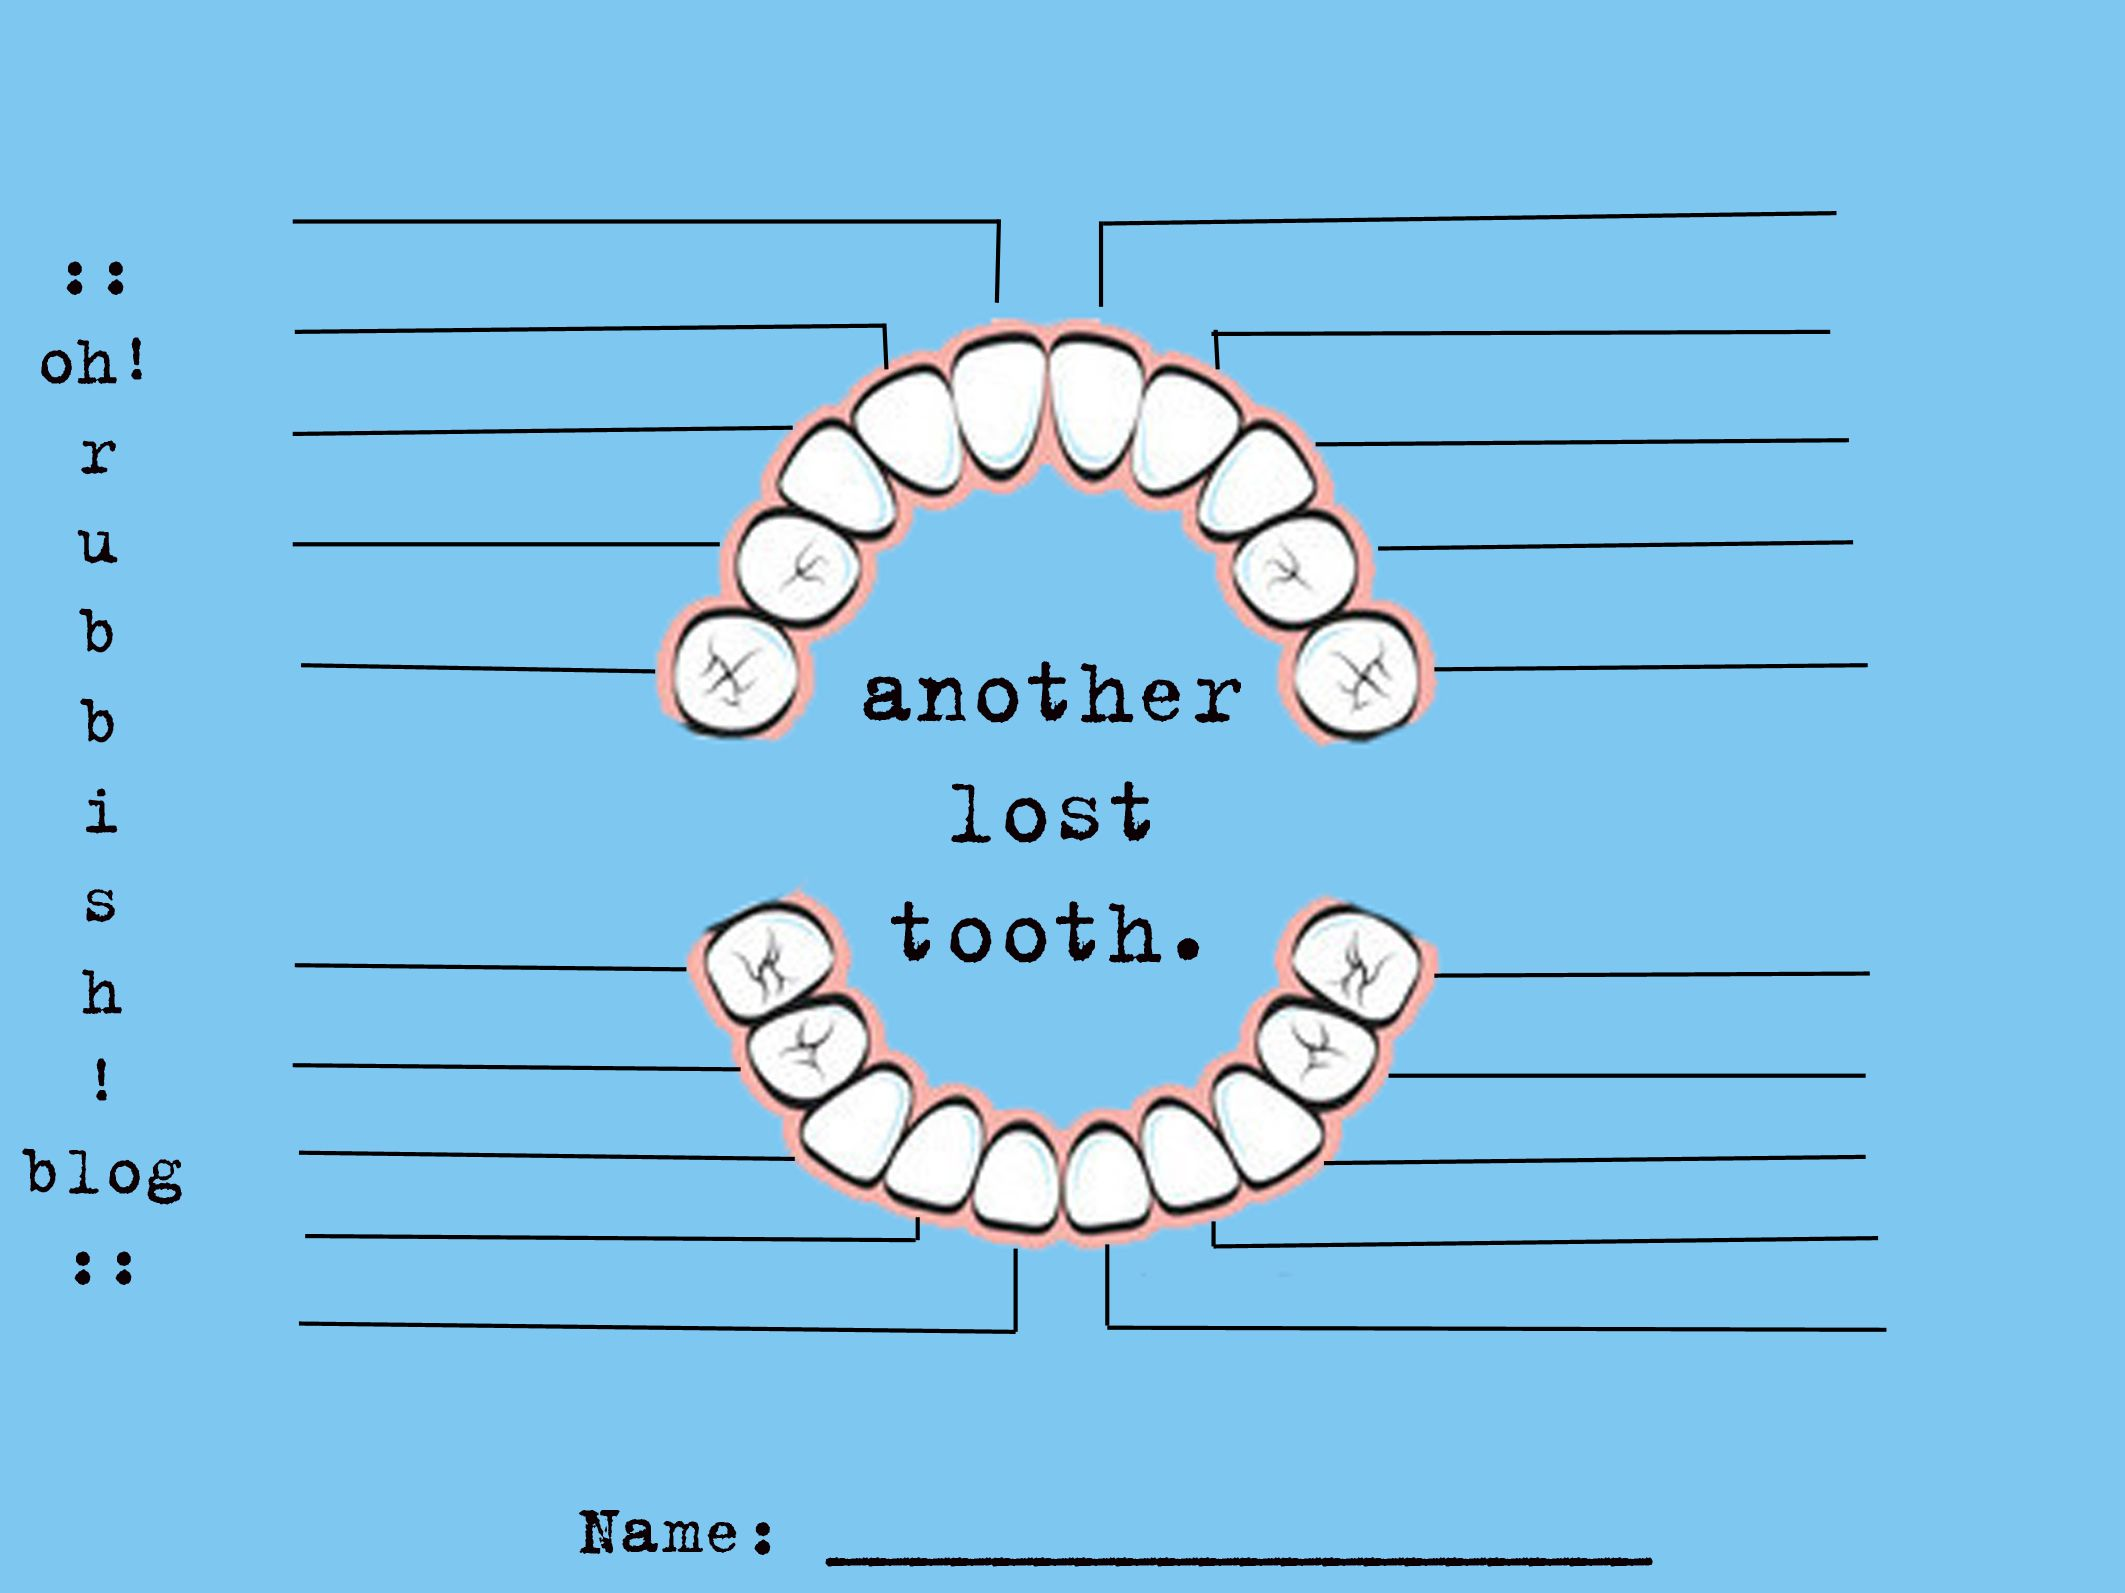 medium resolution of another lost tooth chart free printable oh rubbish blog diy scrapbook memories keepsakes traditions projects tooth fairy visit log